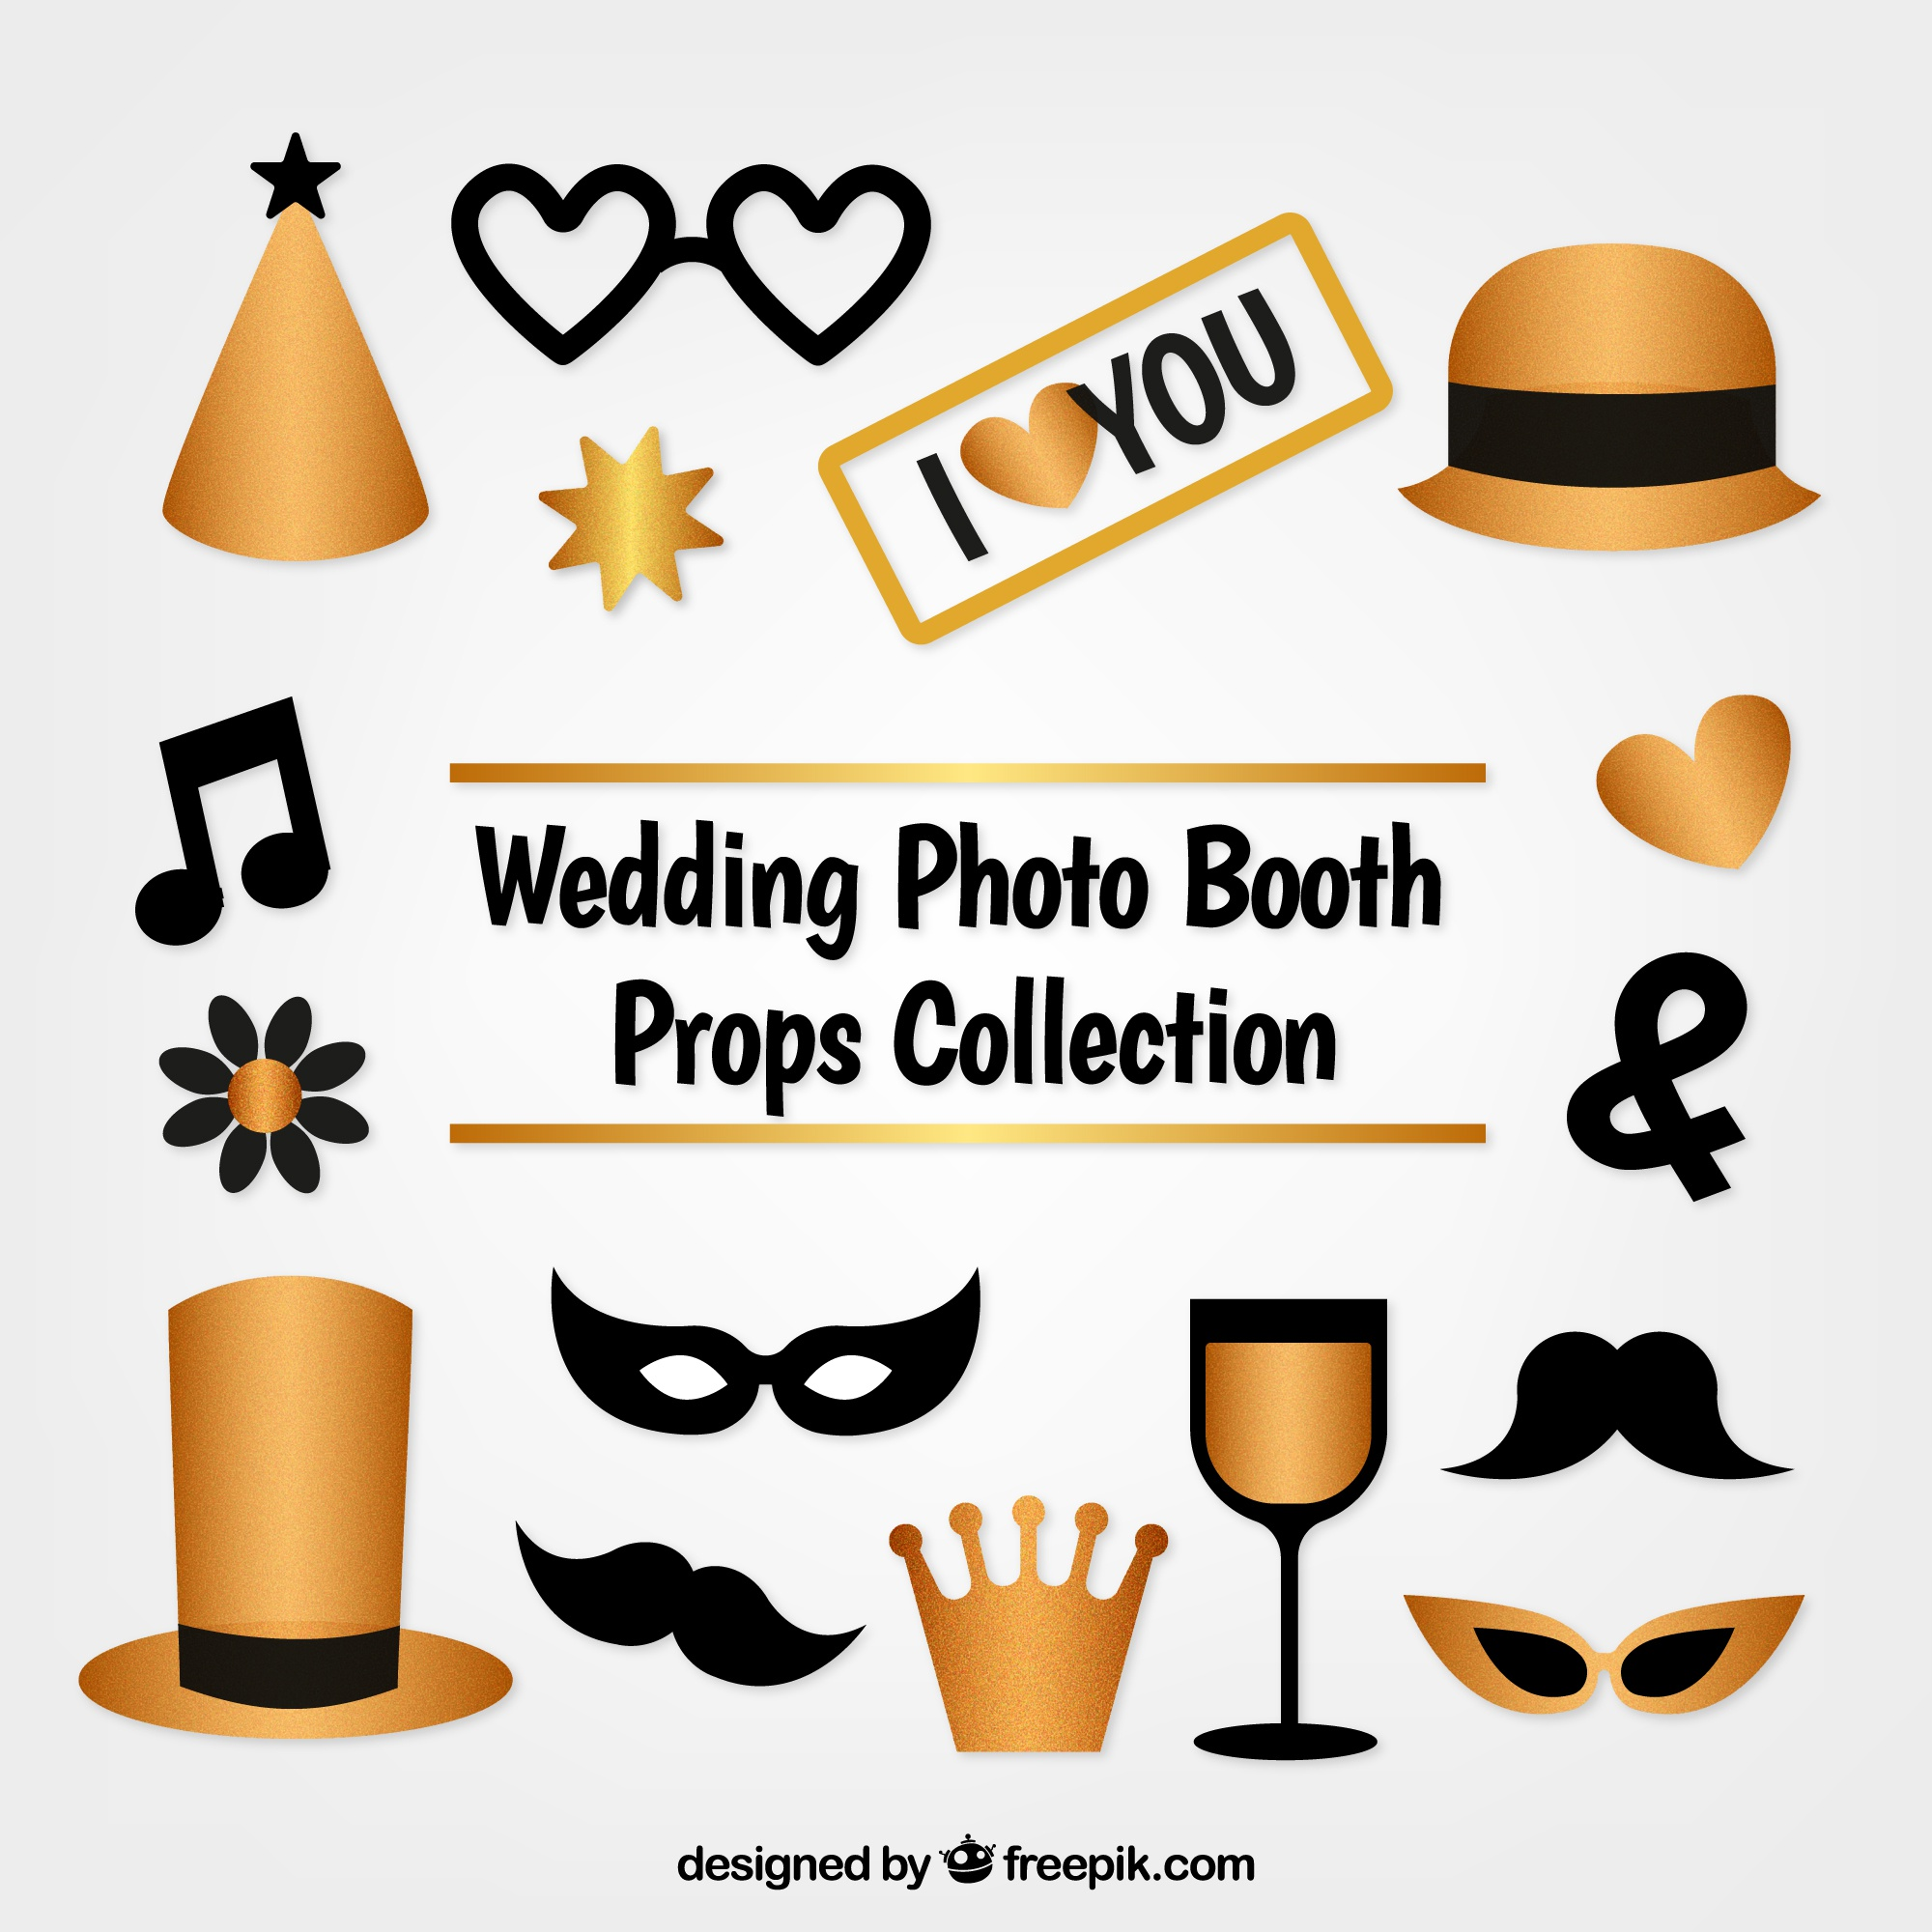 Pack of golden accessories for photo booth